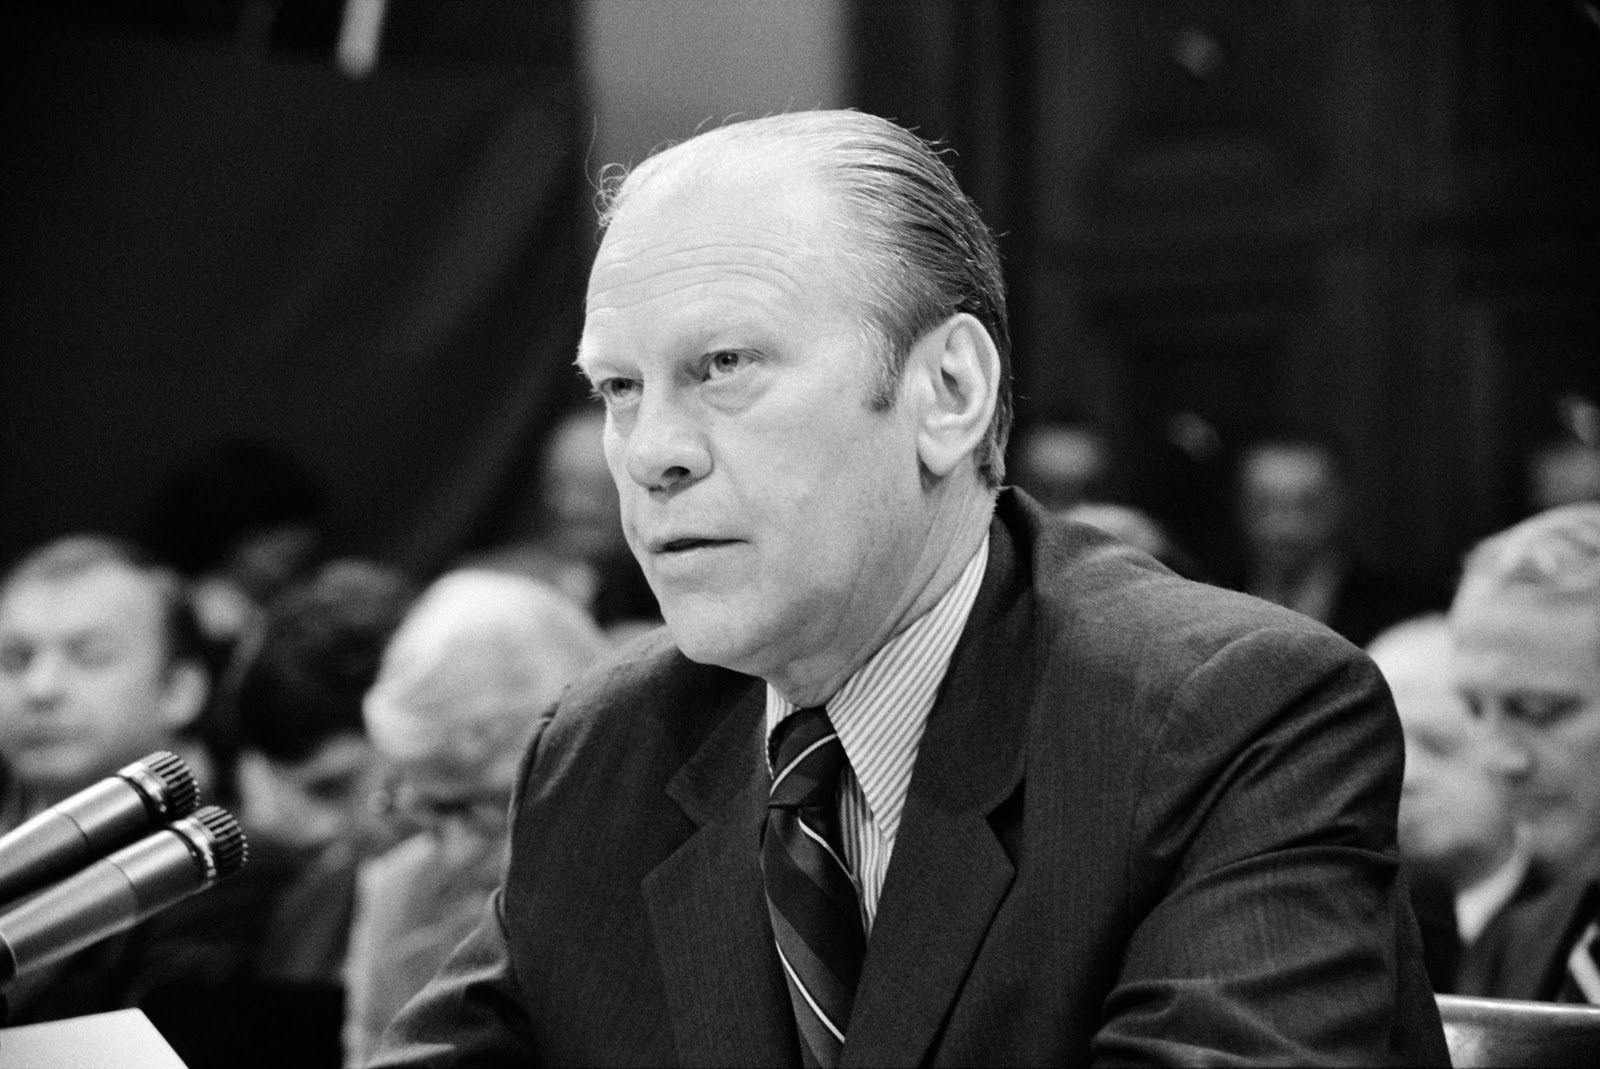 gerald ford - photo #8